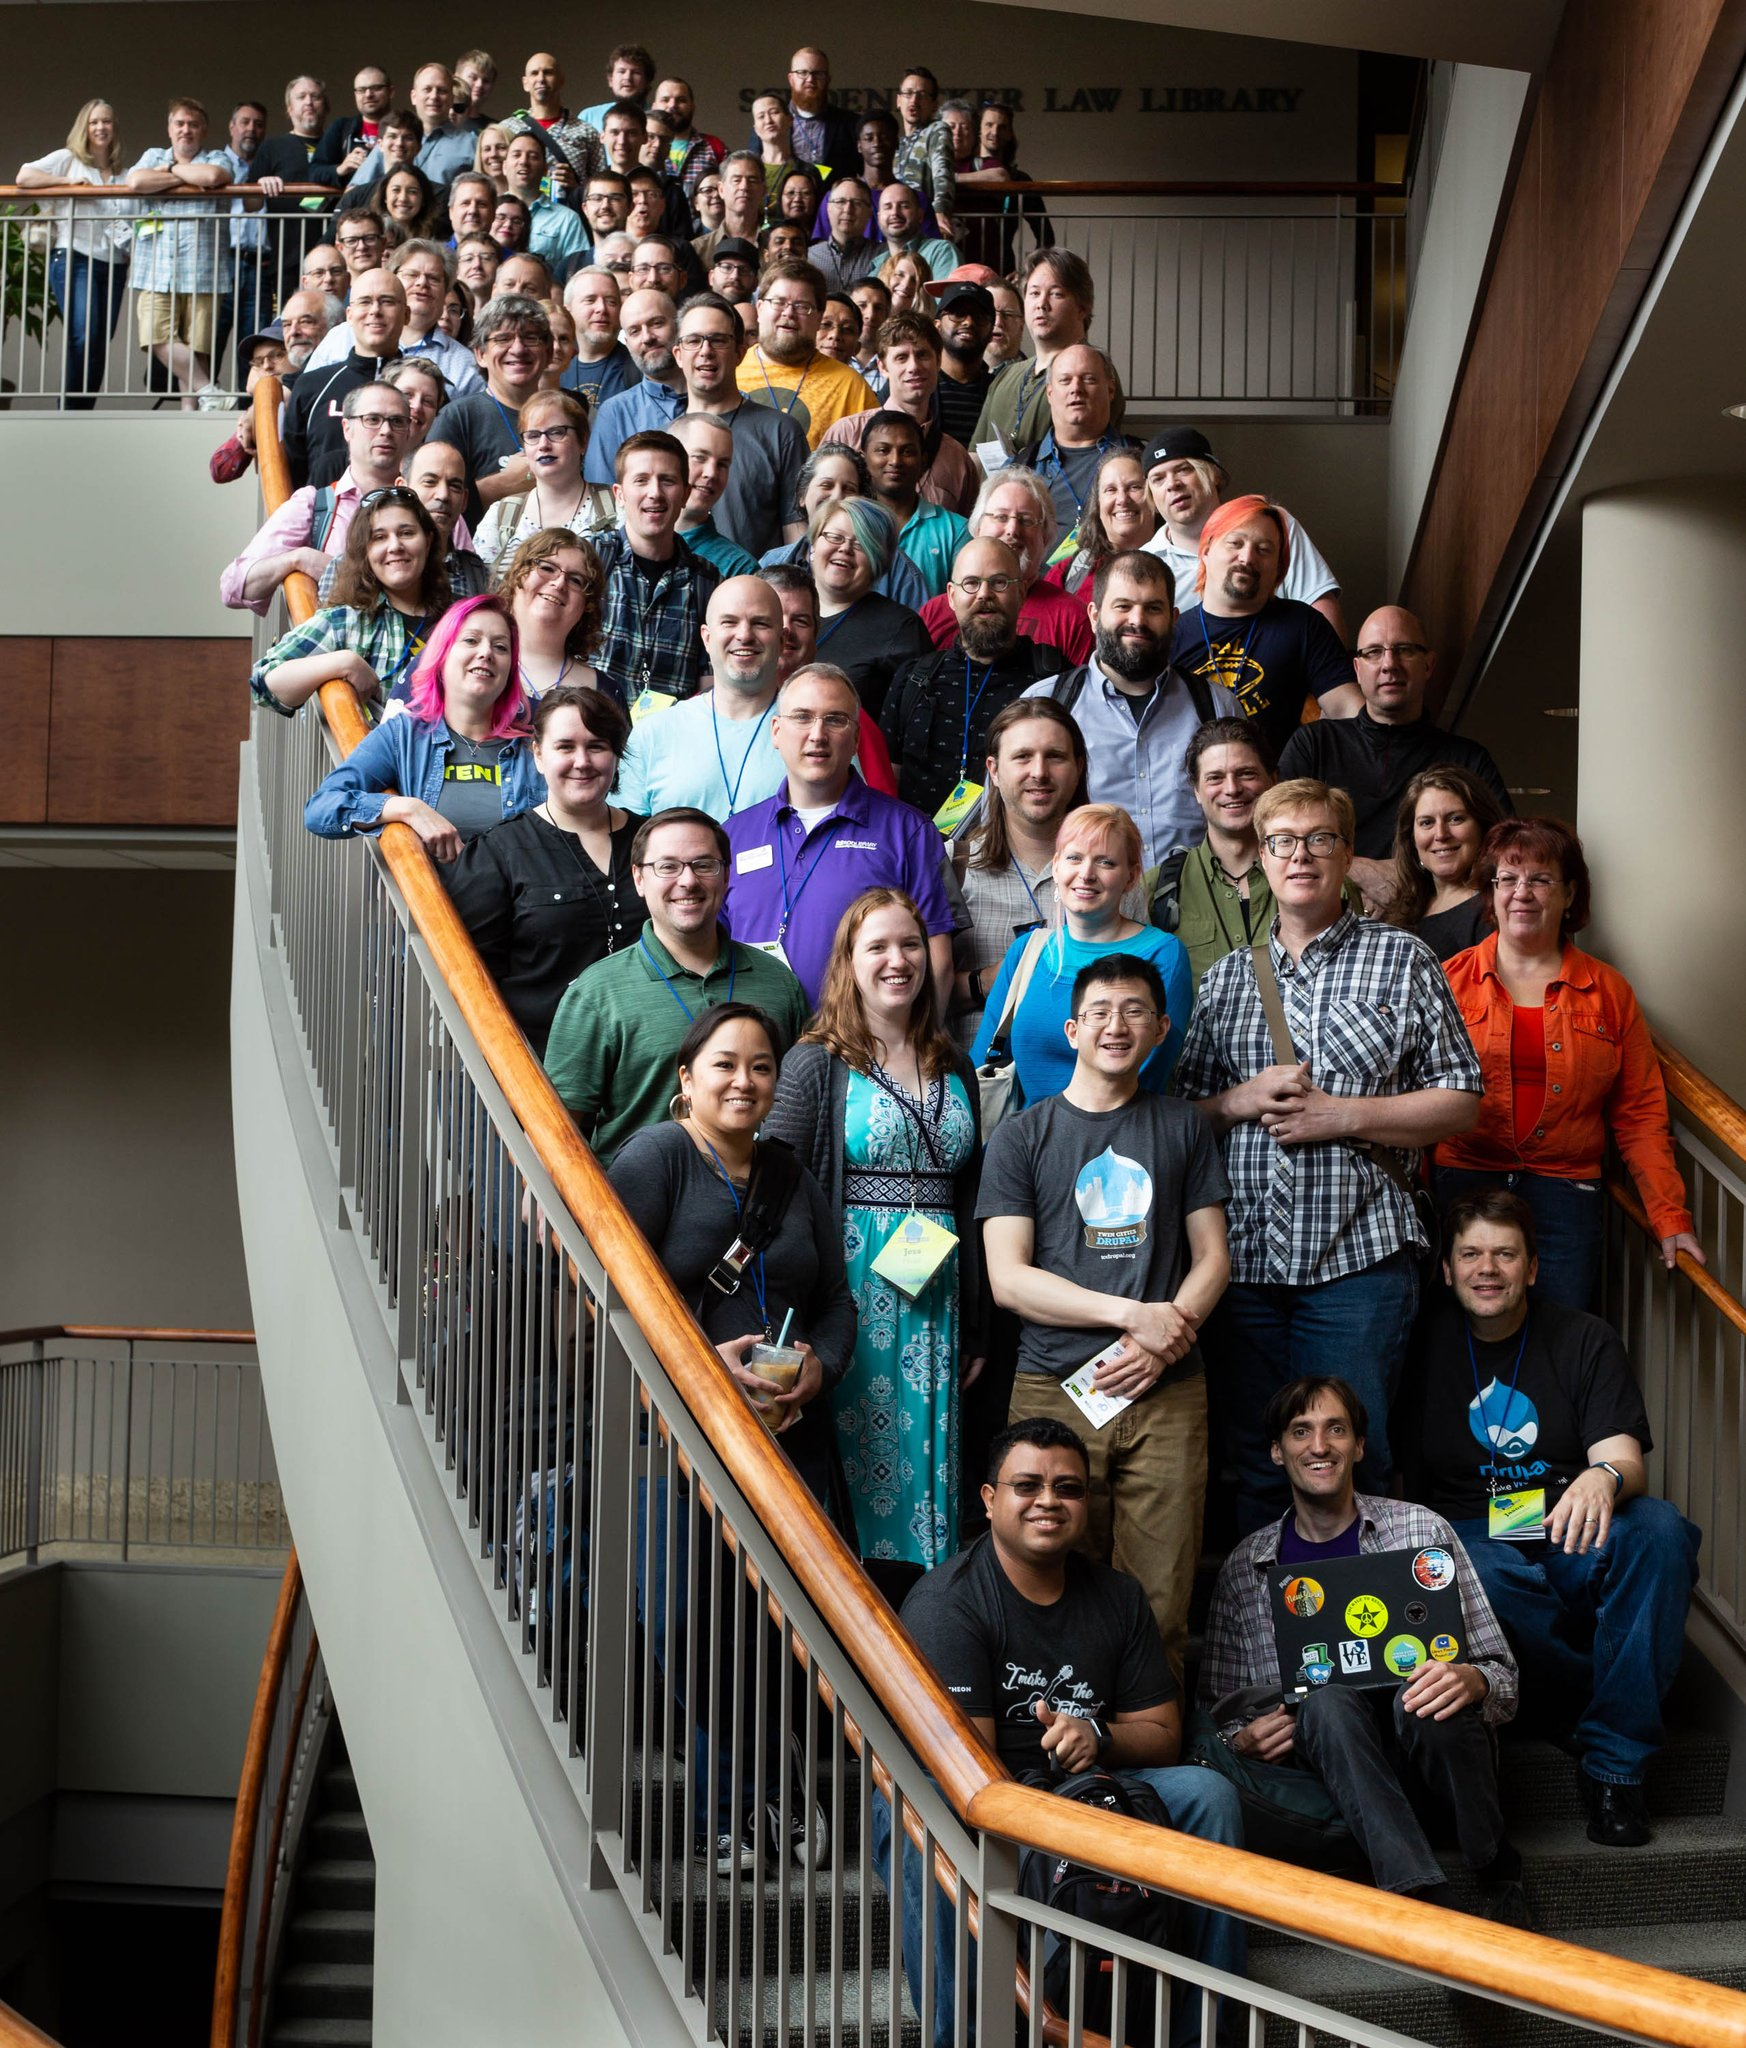 Group photo, everyone on the staircase. Twin Cites Drupal Camp 2018